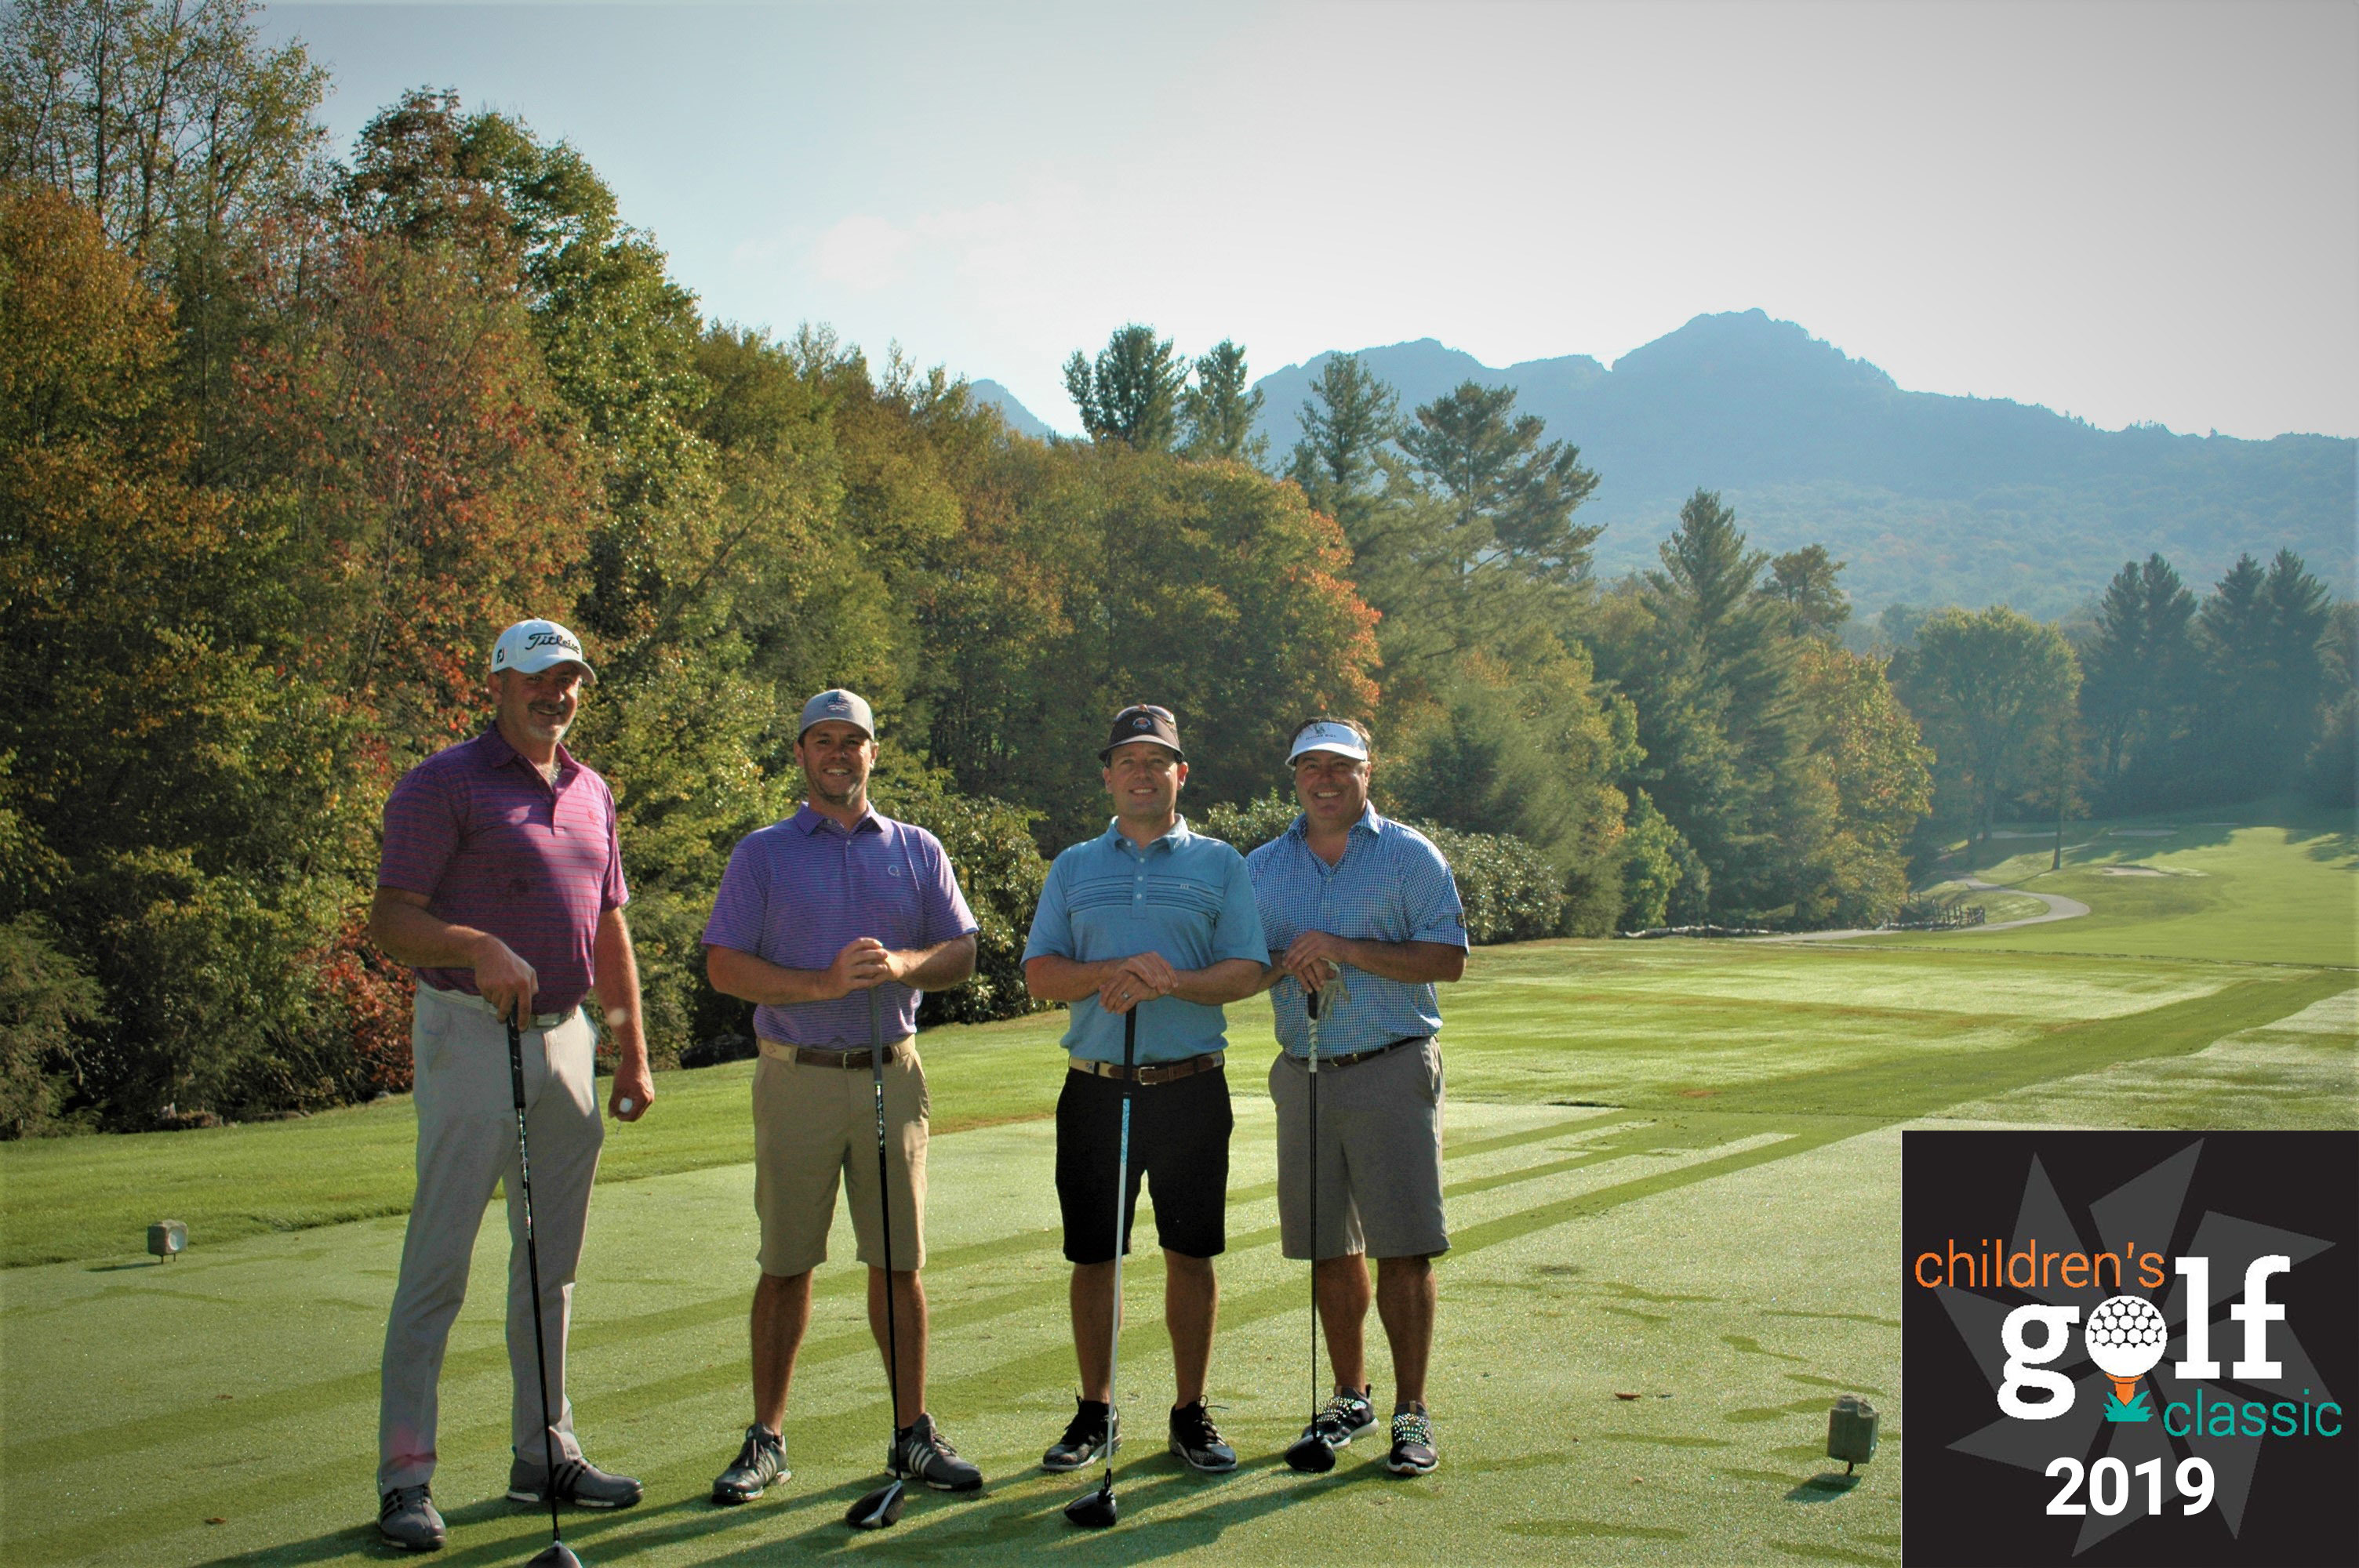 Children's Golf Classic gallery image #2